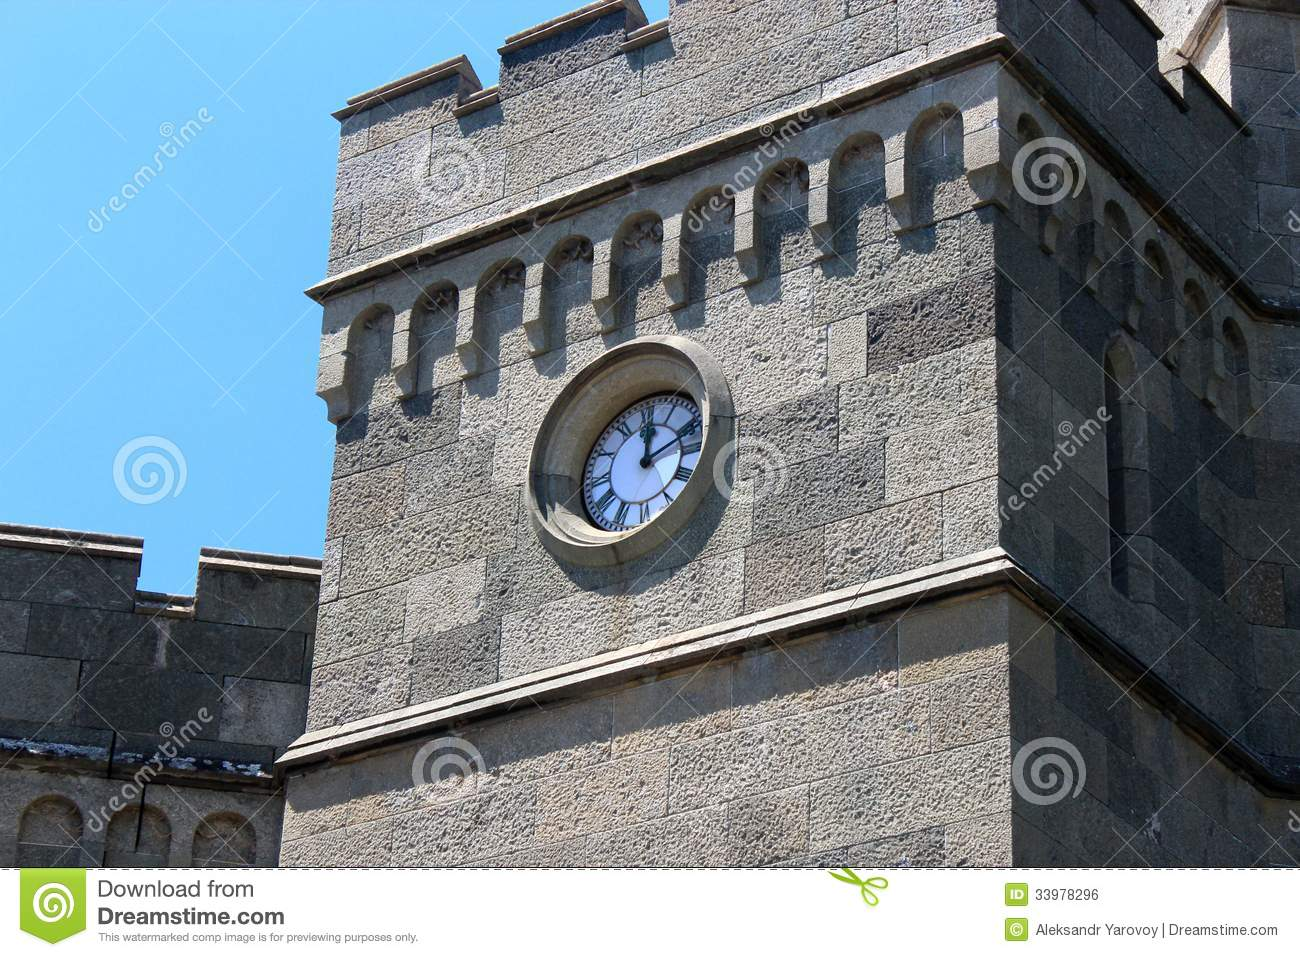 Tower Clock Royalty Free Stock Image - Image: 33978296